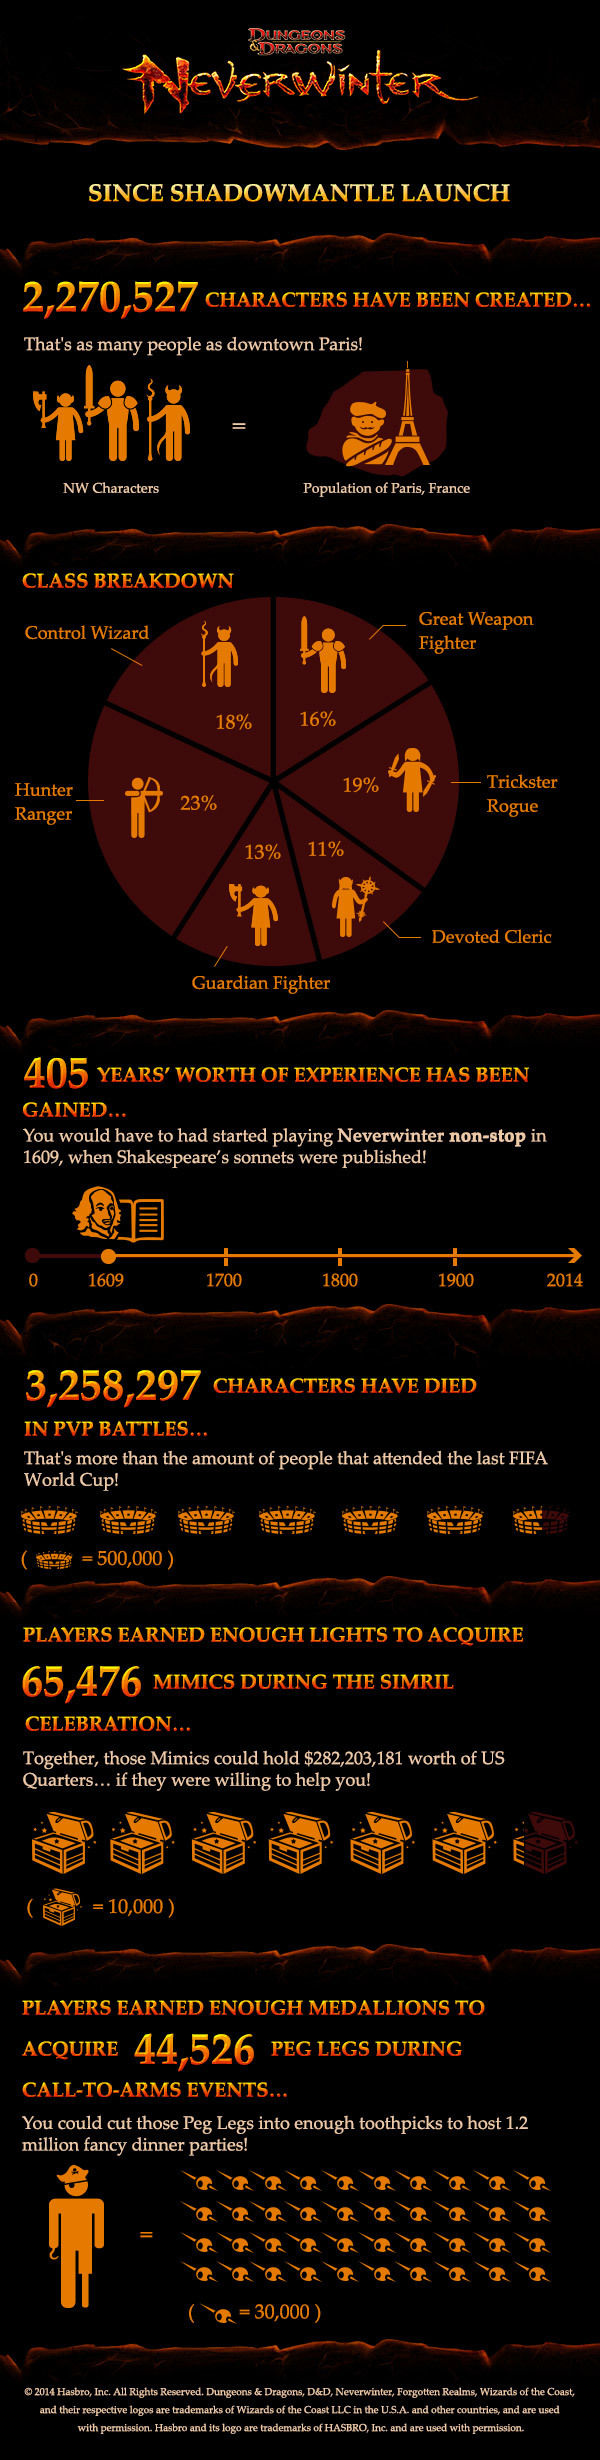 Neverwinter infographic shows that adventuring can be a risky hobby